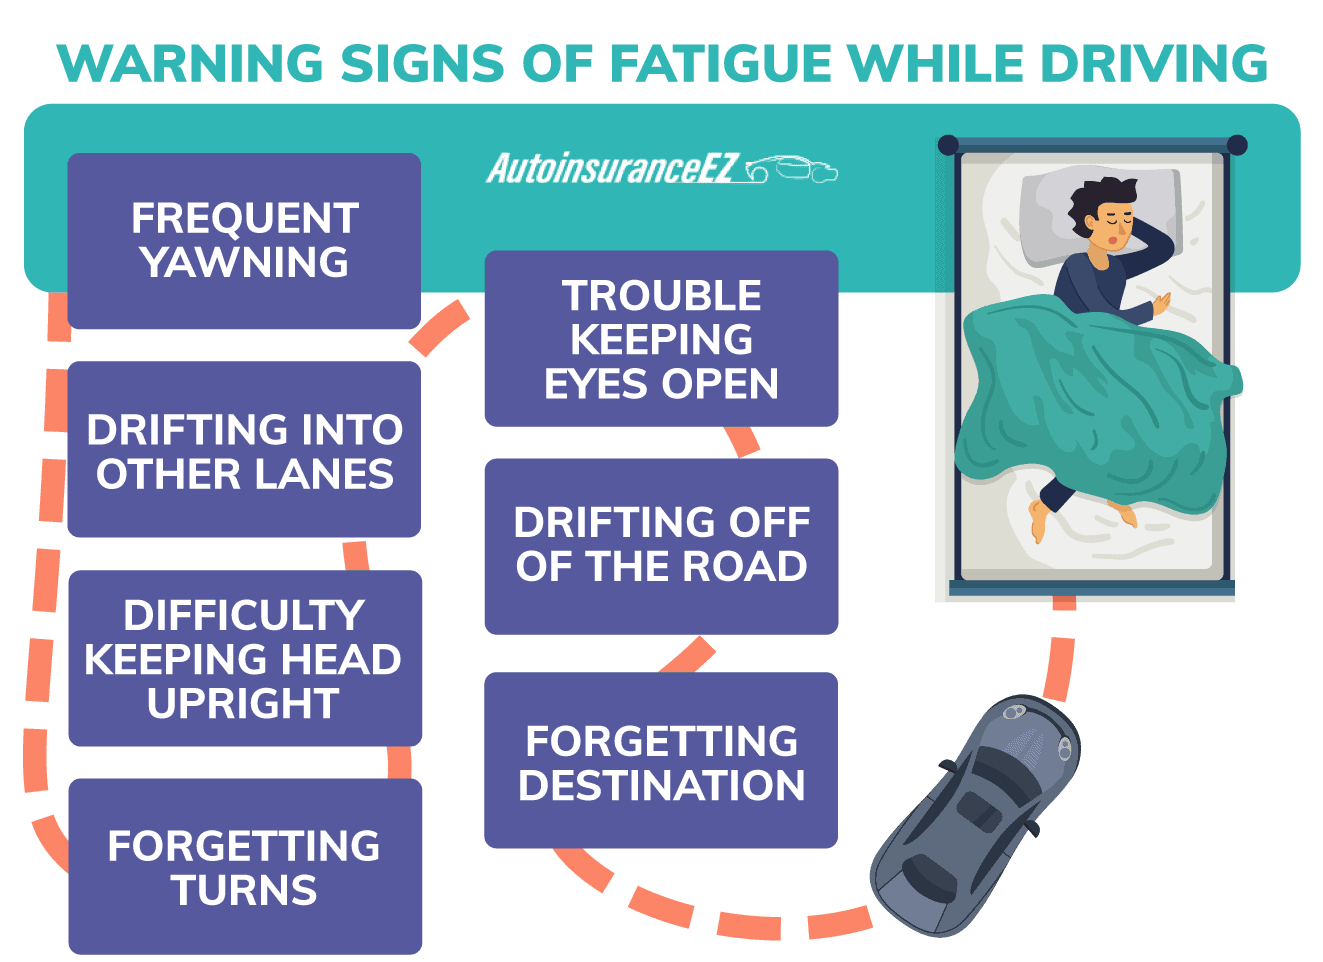 Warning Signs of Fatigue While Driving